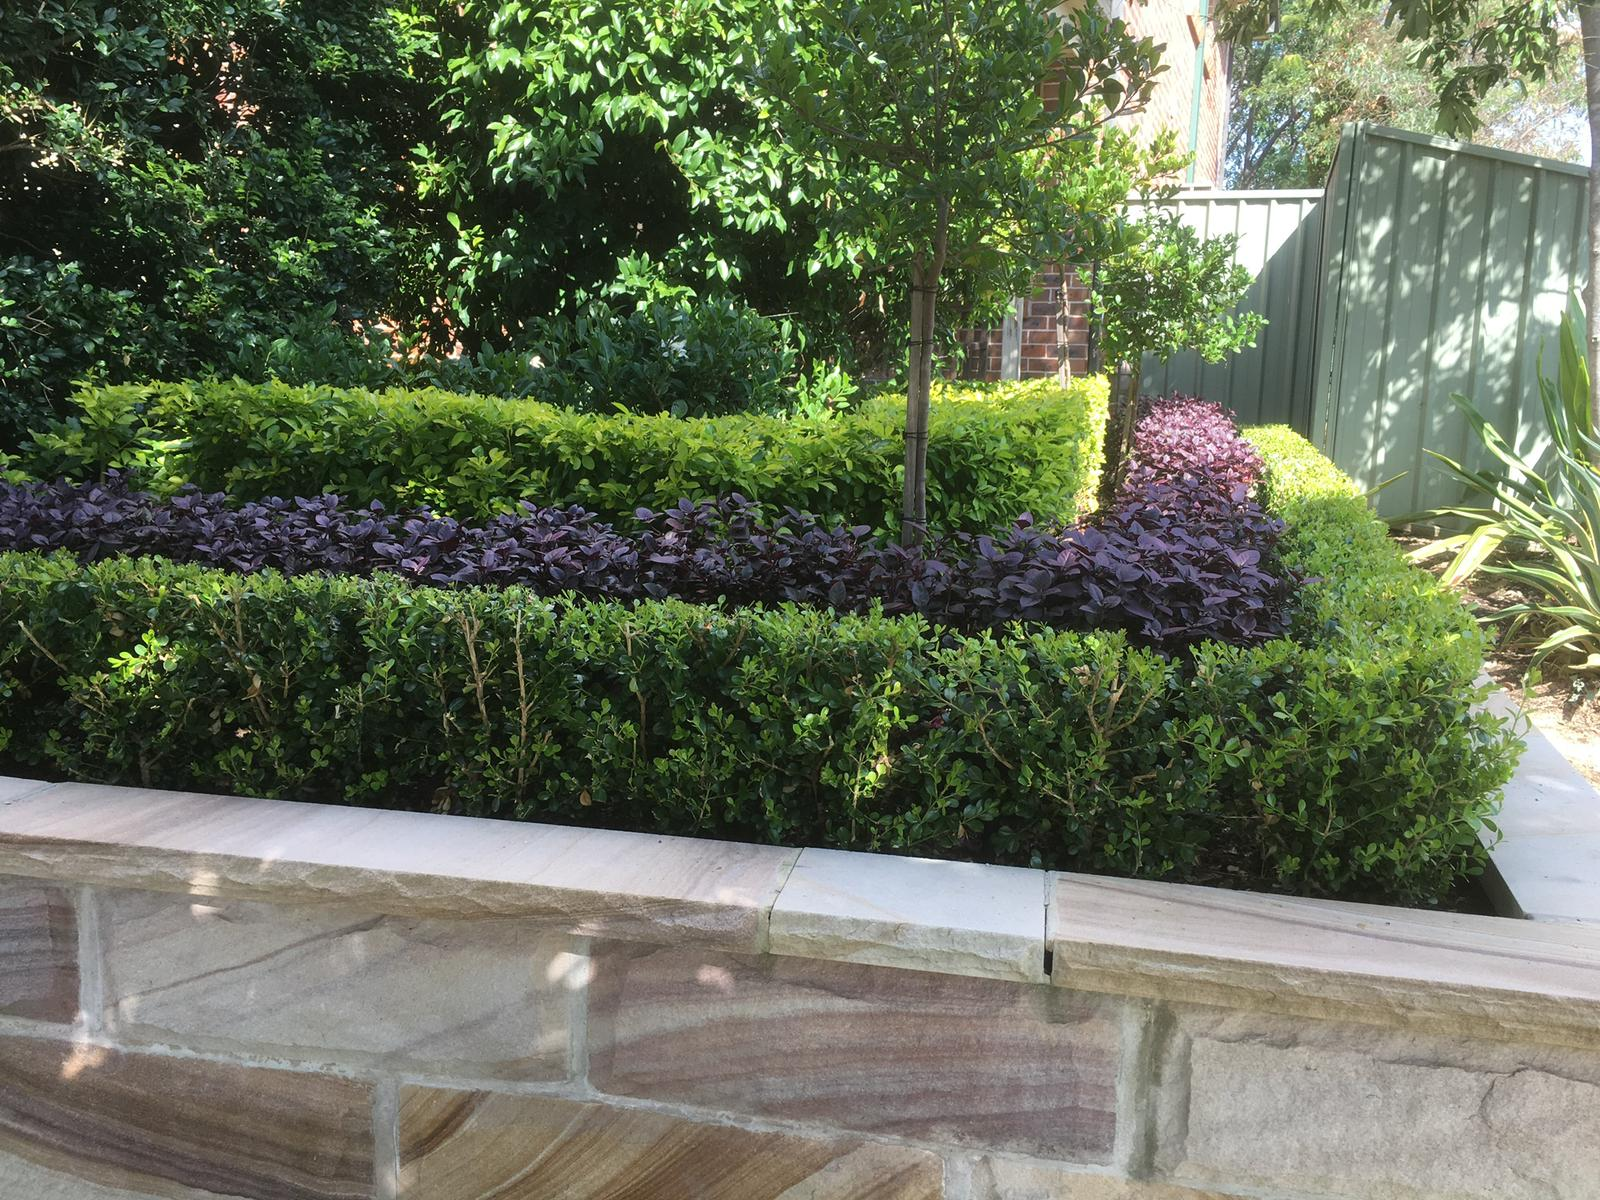 Retaining wall with trimmed and sculpted hedges within it